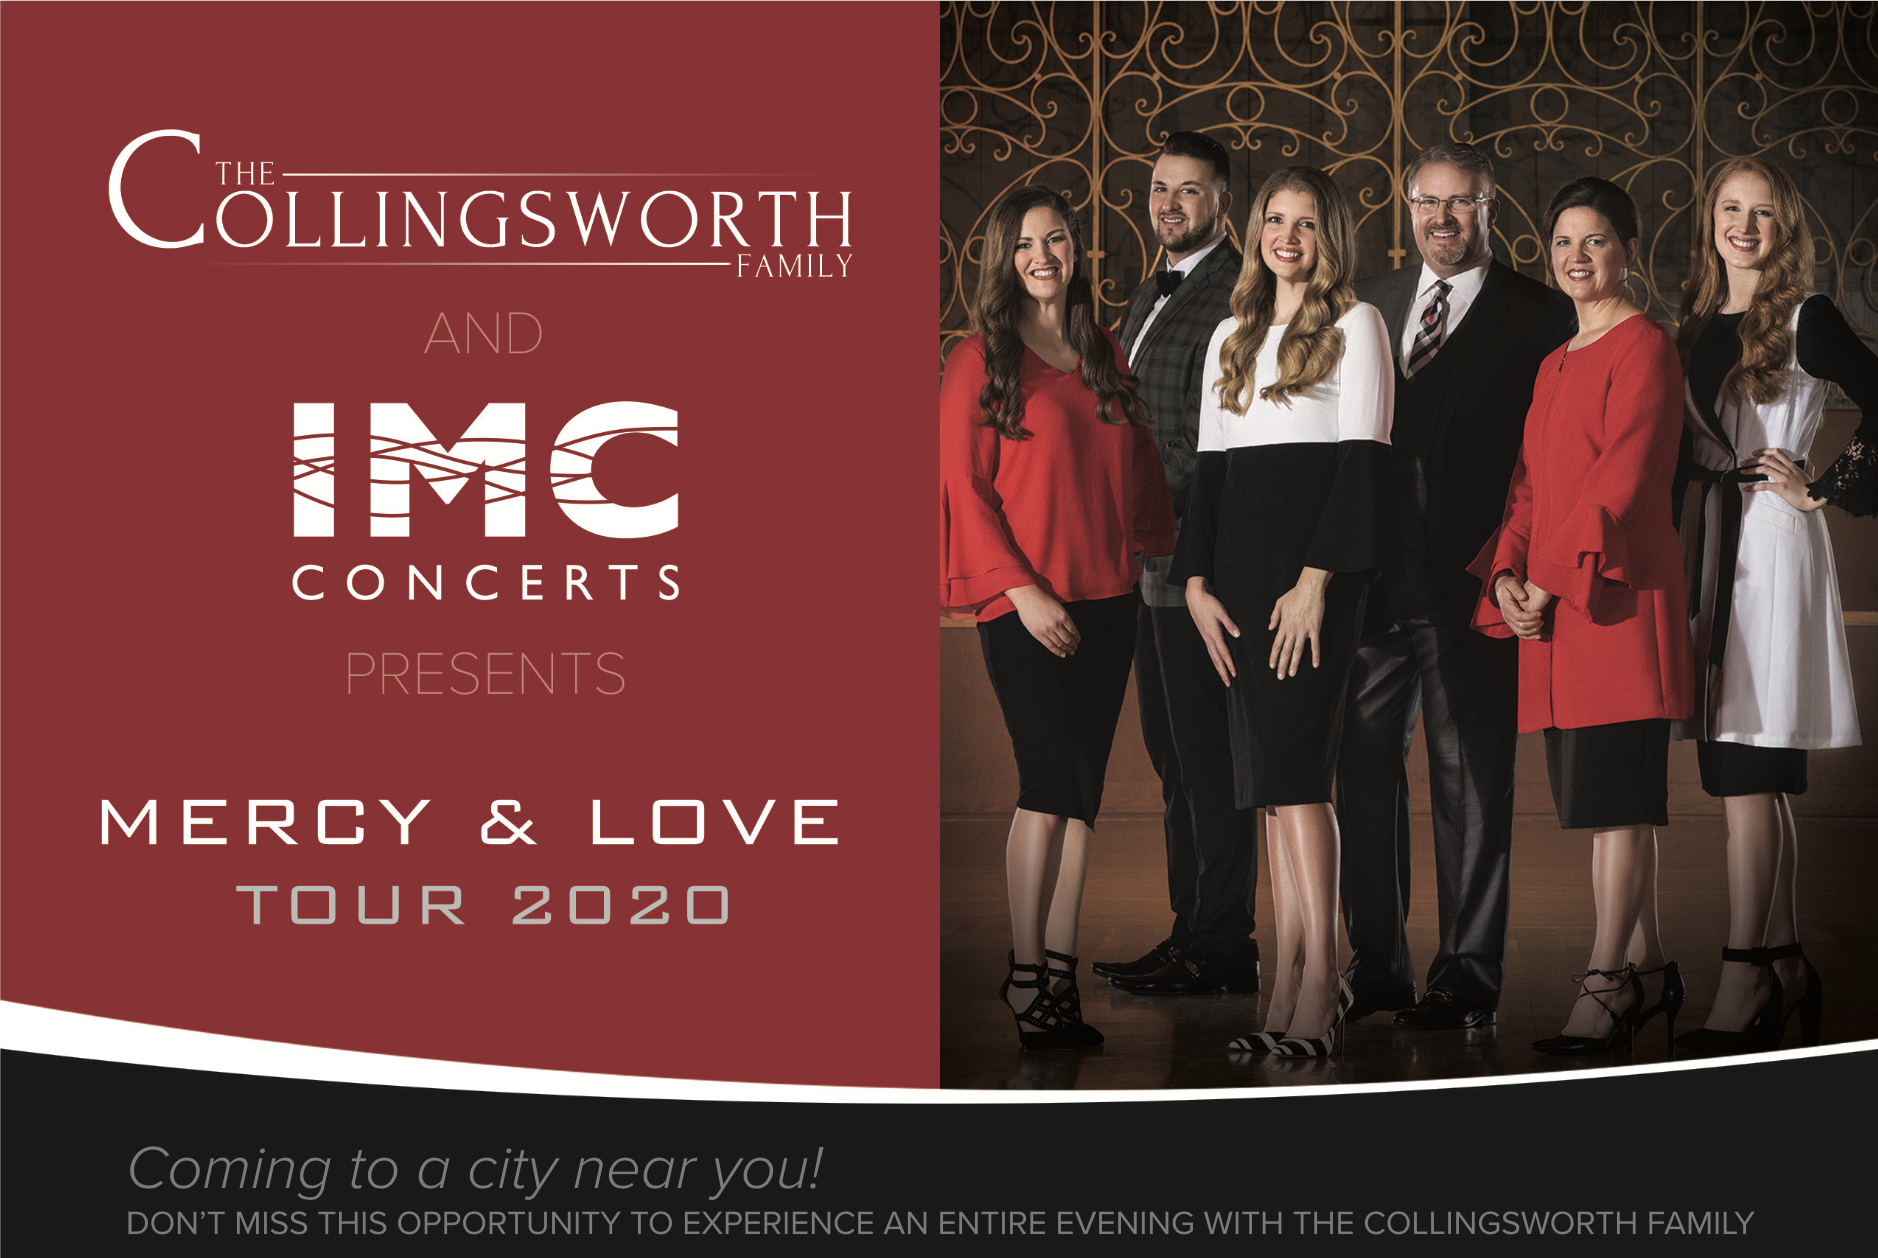 IMC CONCERTS TEAMS WITH THE COLLINGSWORTH FAMILY TO PRESENT MERCY & LOVE TOUR COAST TO COAST